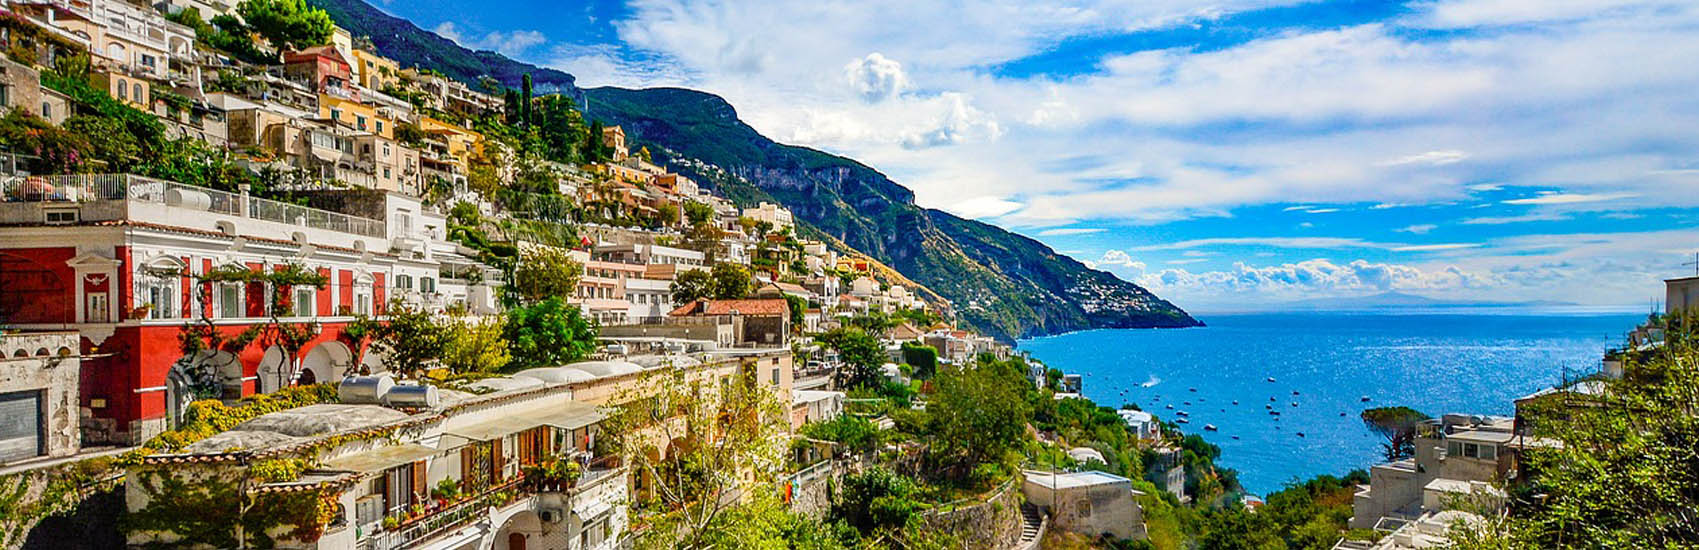 Savings to Italy with Globus Vacations! 3